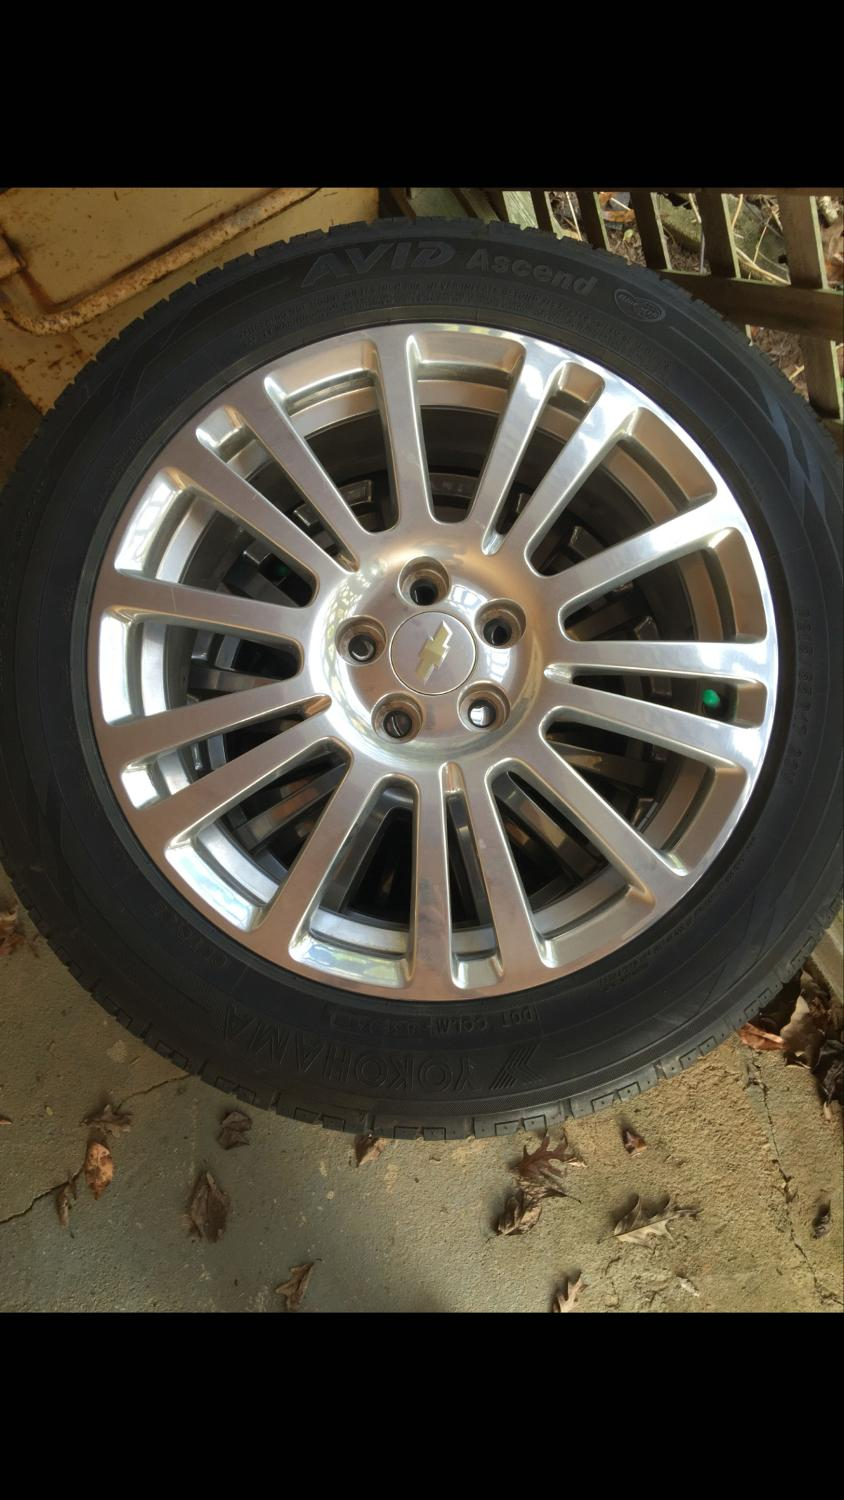 2012 Chevy Cruze Tire Size >> 2012 Chevy Cruze Tire Size Best Upcoming Car Release 2020